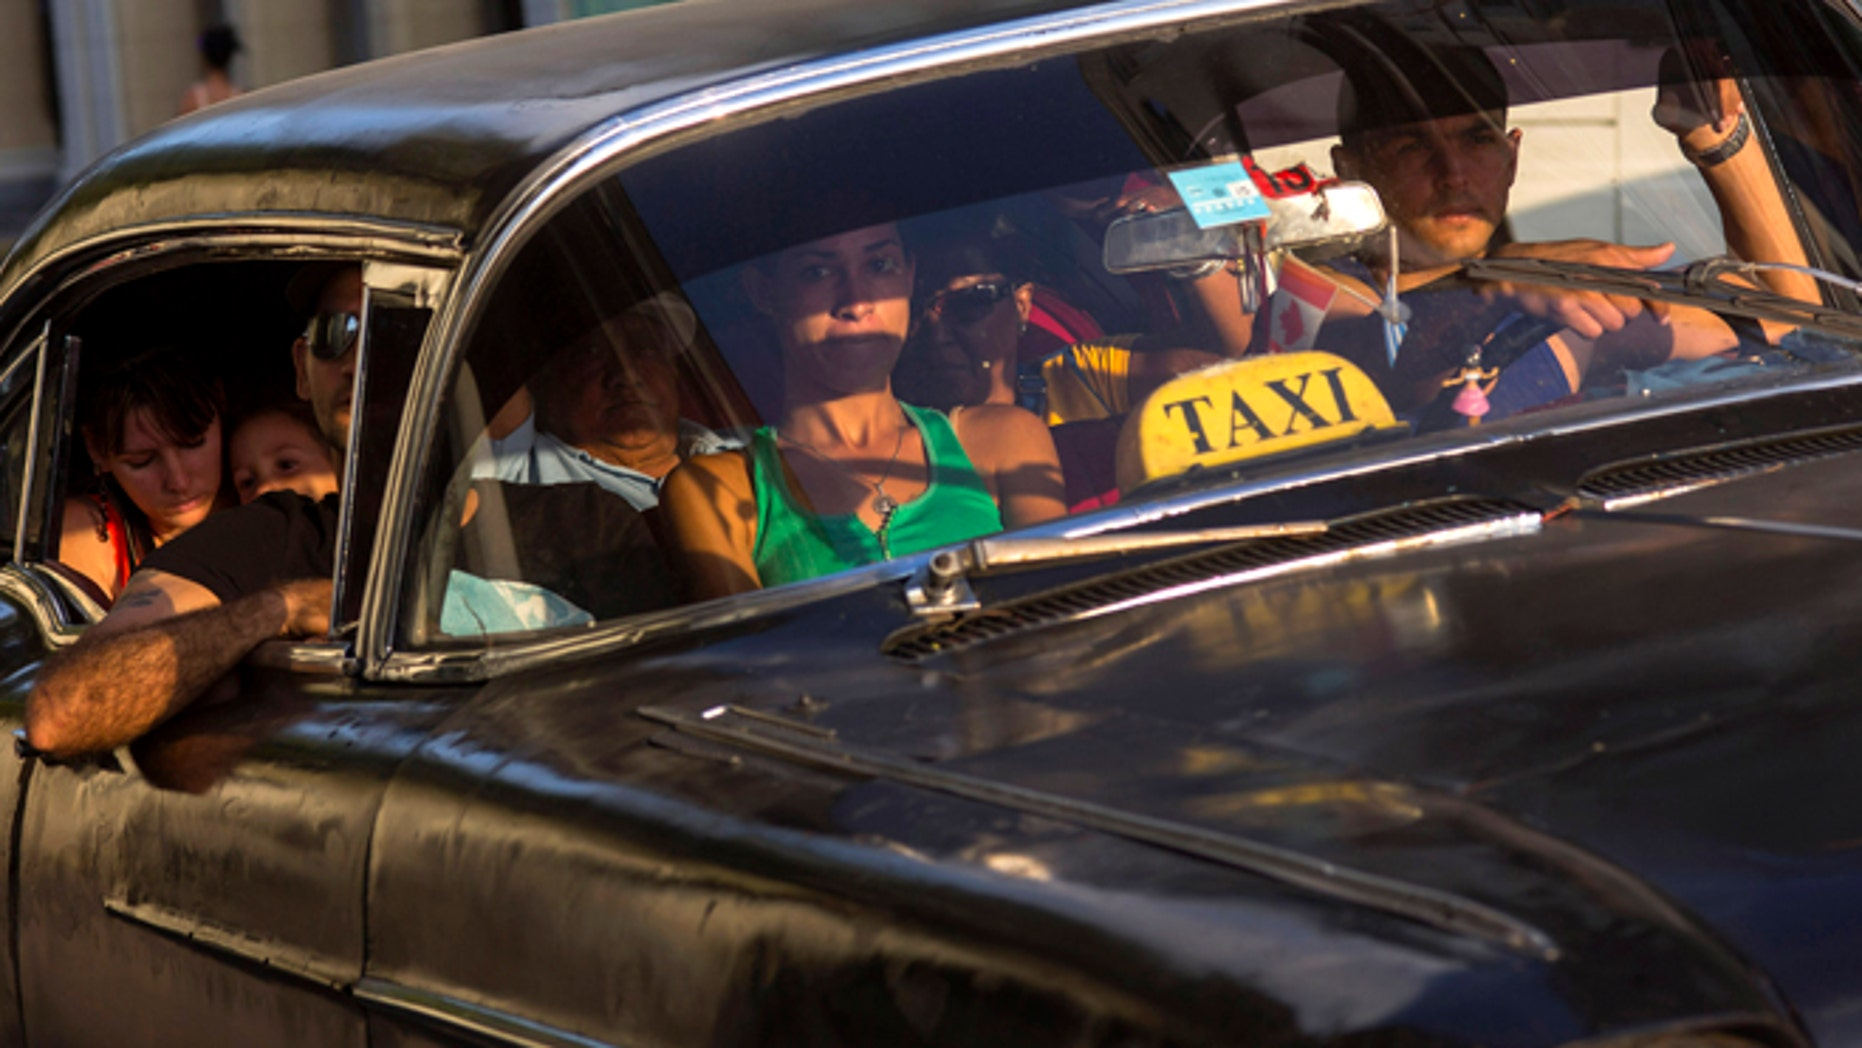 A taxi driver transports a car full of passengers, in Havana, Cuba, Tuesday, Feb. 17, 2015. A more relaxed and hopeful atmosphere is evident in Cuba as a result of President Raul Castroís modest reforms and afte the agreement by Cuba and the U.S. to move toward a more normal relationship. (AP Photo/Ramon Espinosa)